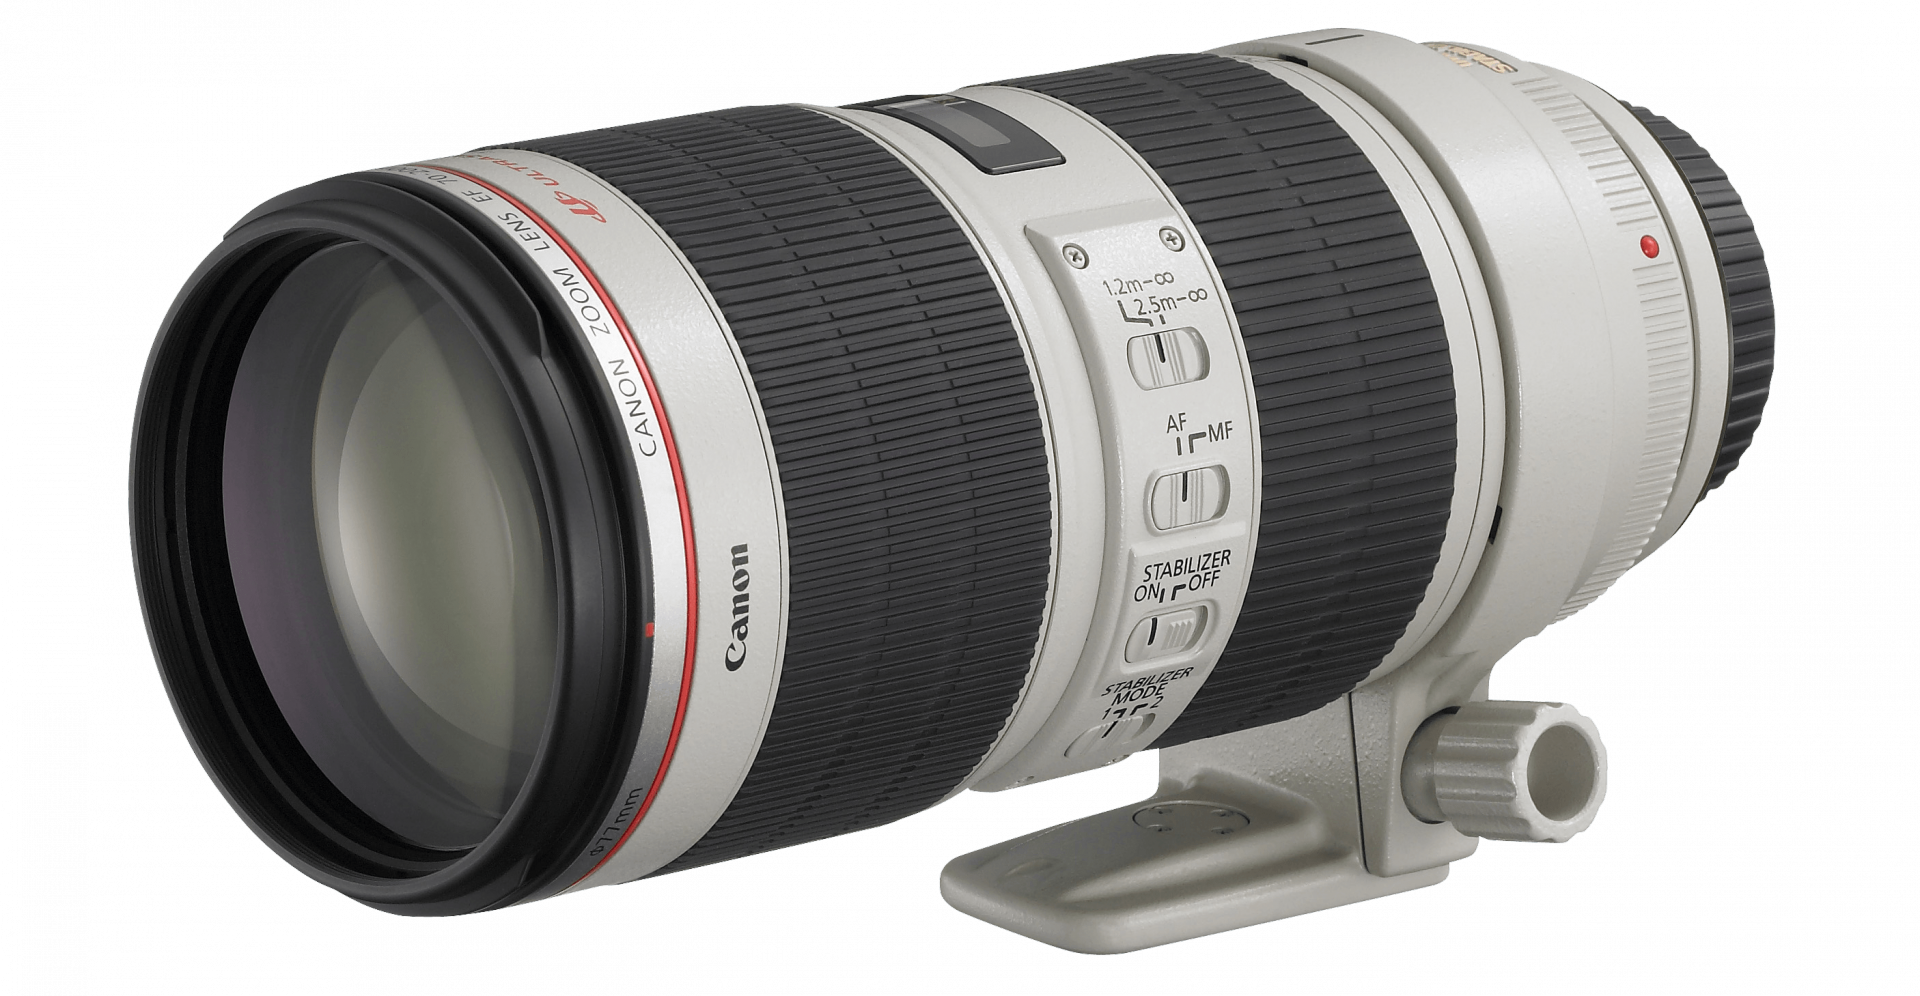 картинка Canon EF 70-200mm f/2.8L IS USM от магазина Rental+